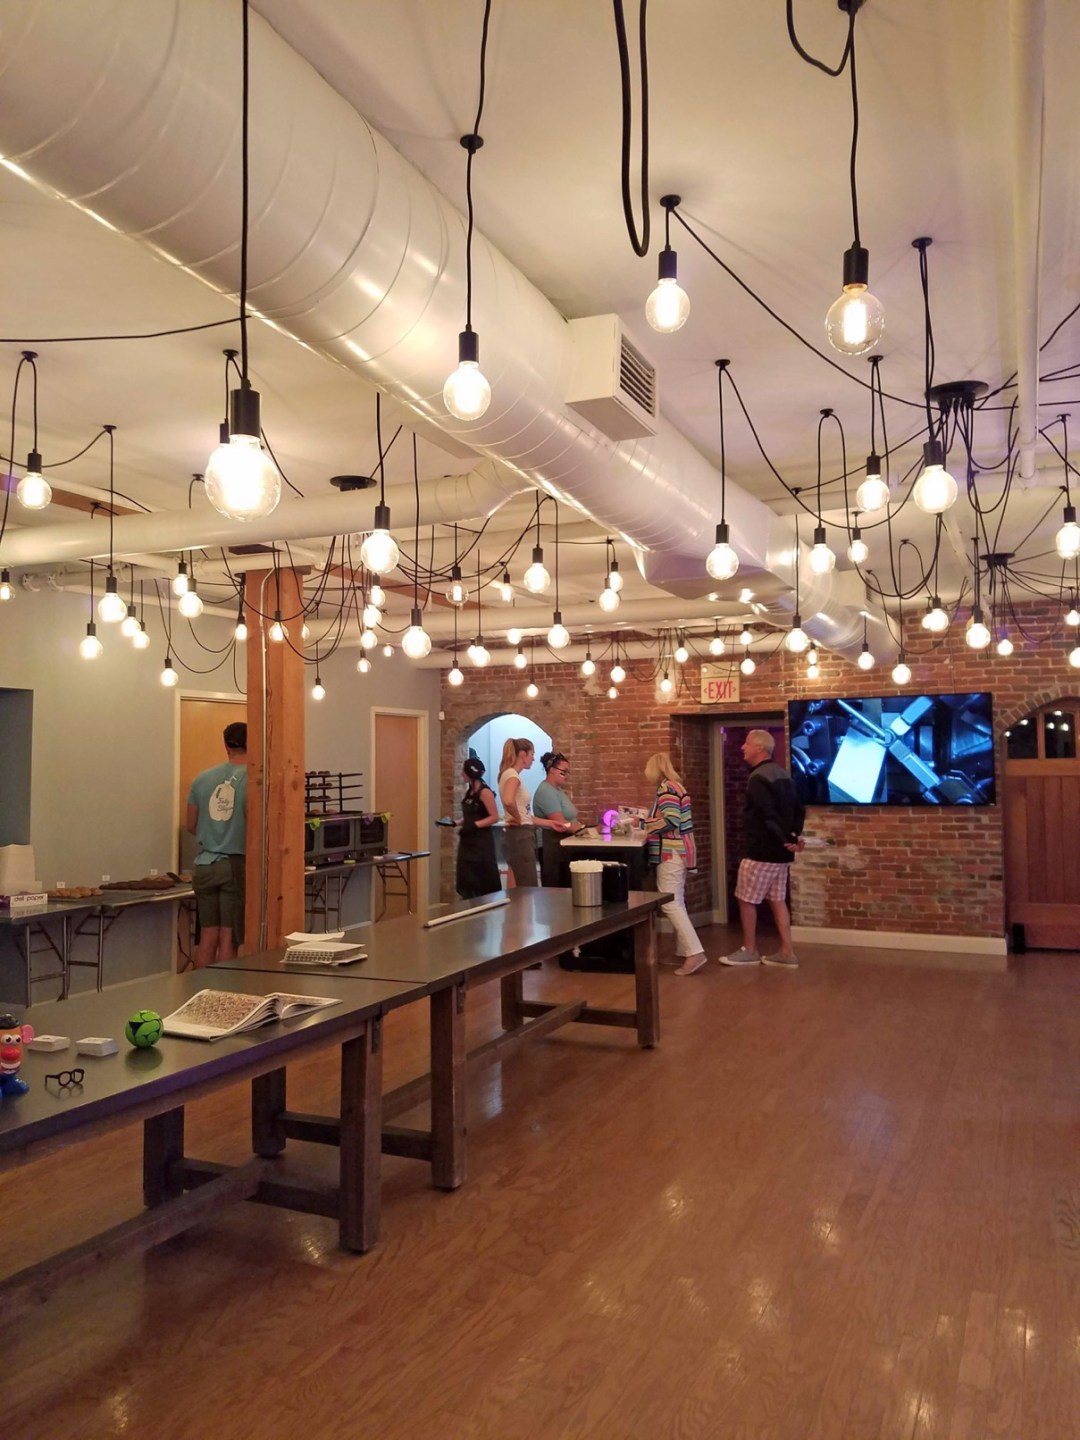 The sparse, roomy interior at Goodnight Fatty may subconsciously convince patrons that there's always room for a cookie or five; photo by Robin Catalano.